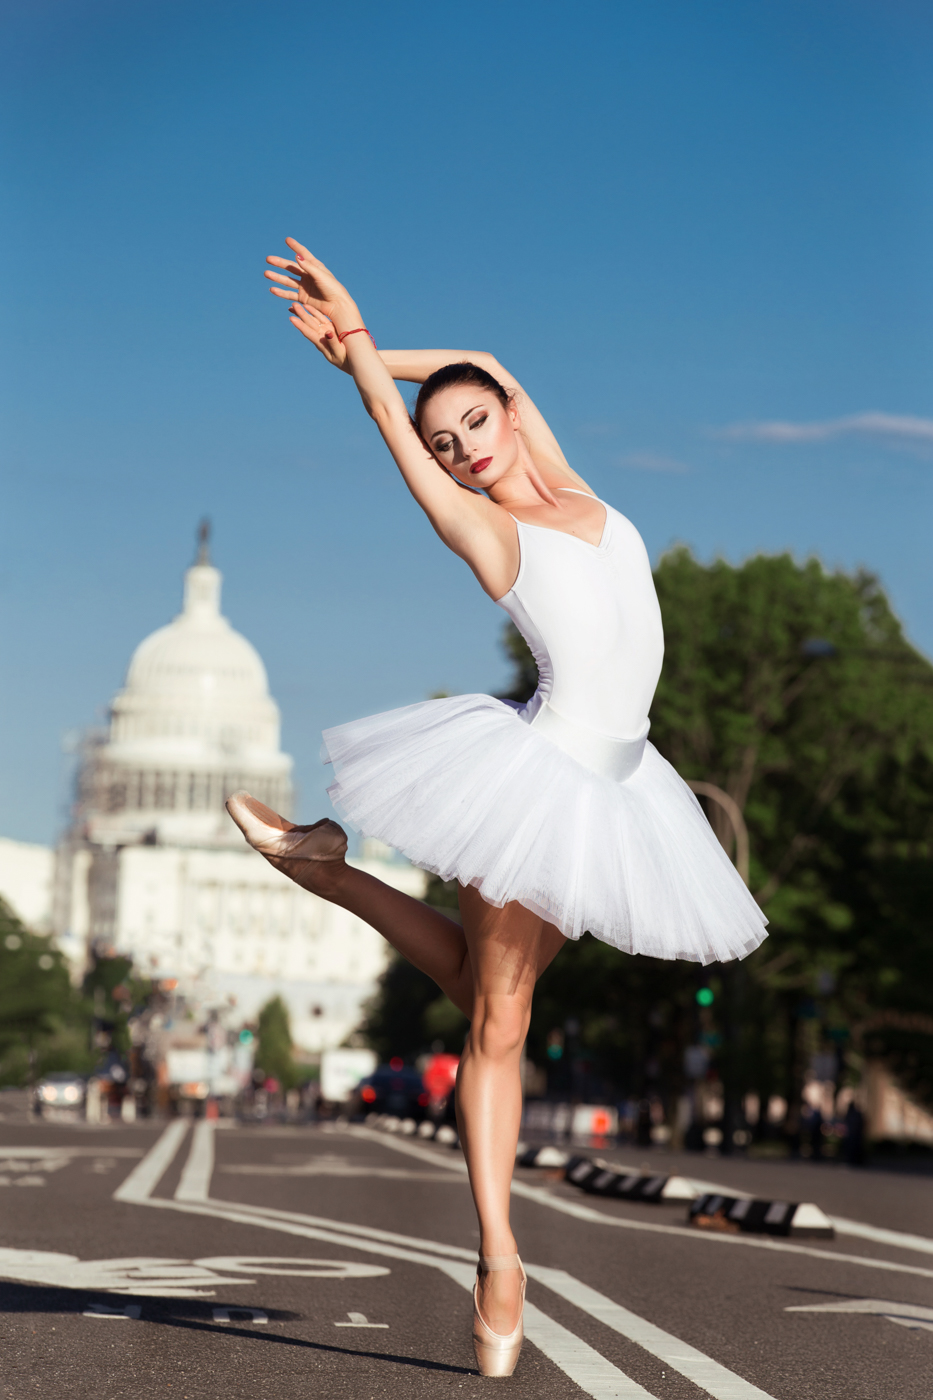 russian-ballet-dancer-on-the-street-of-washington-dc-ksenia-pro-photography-1